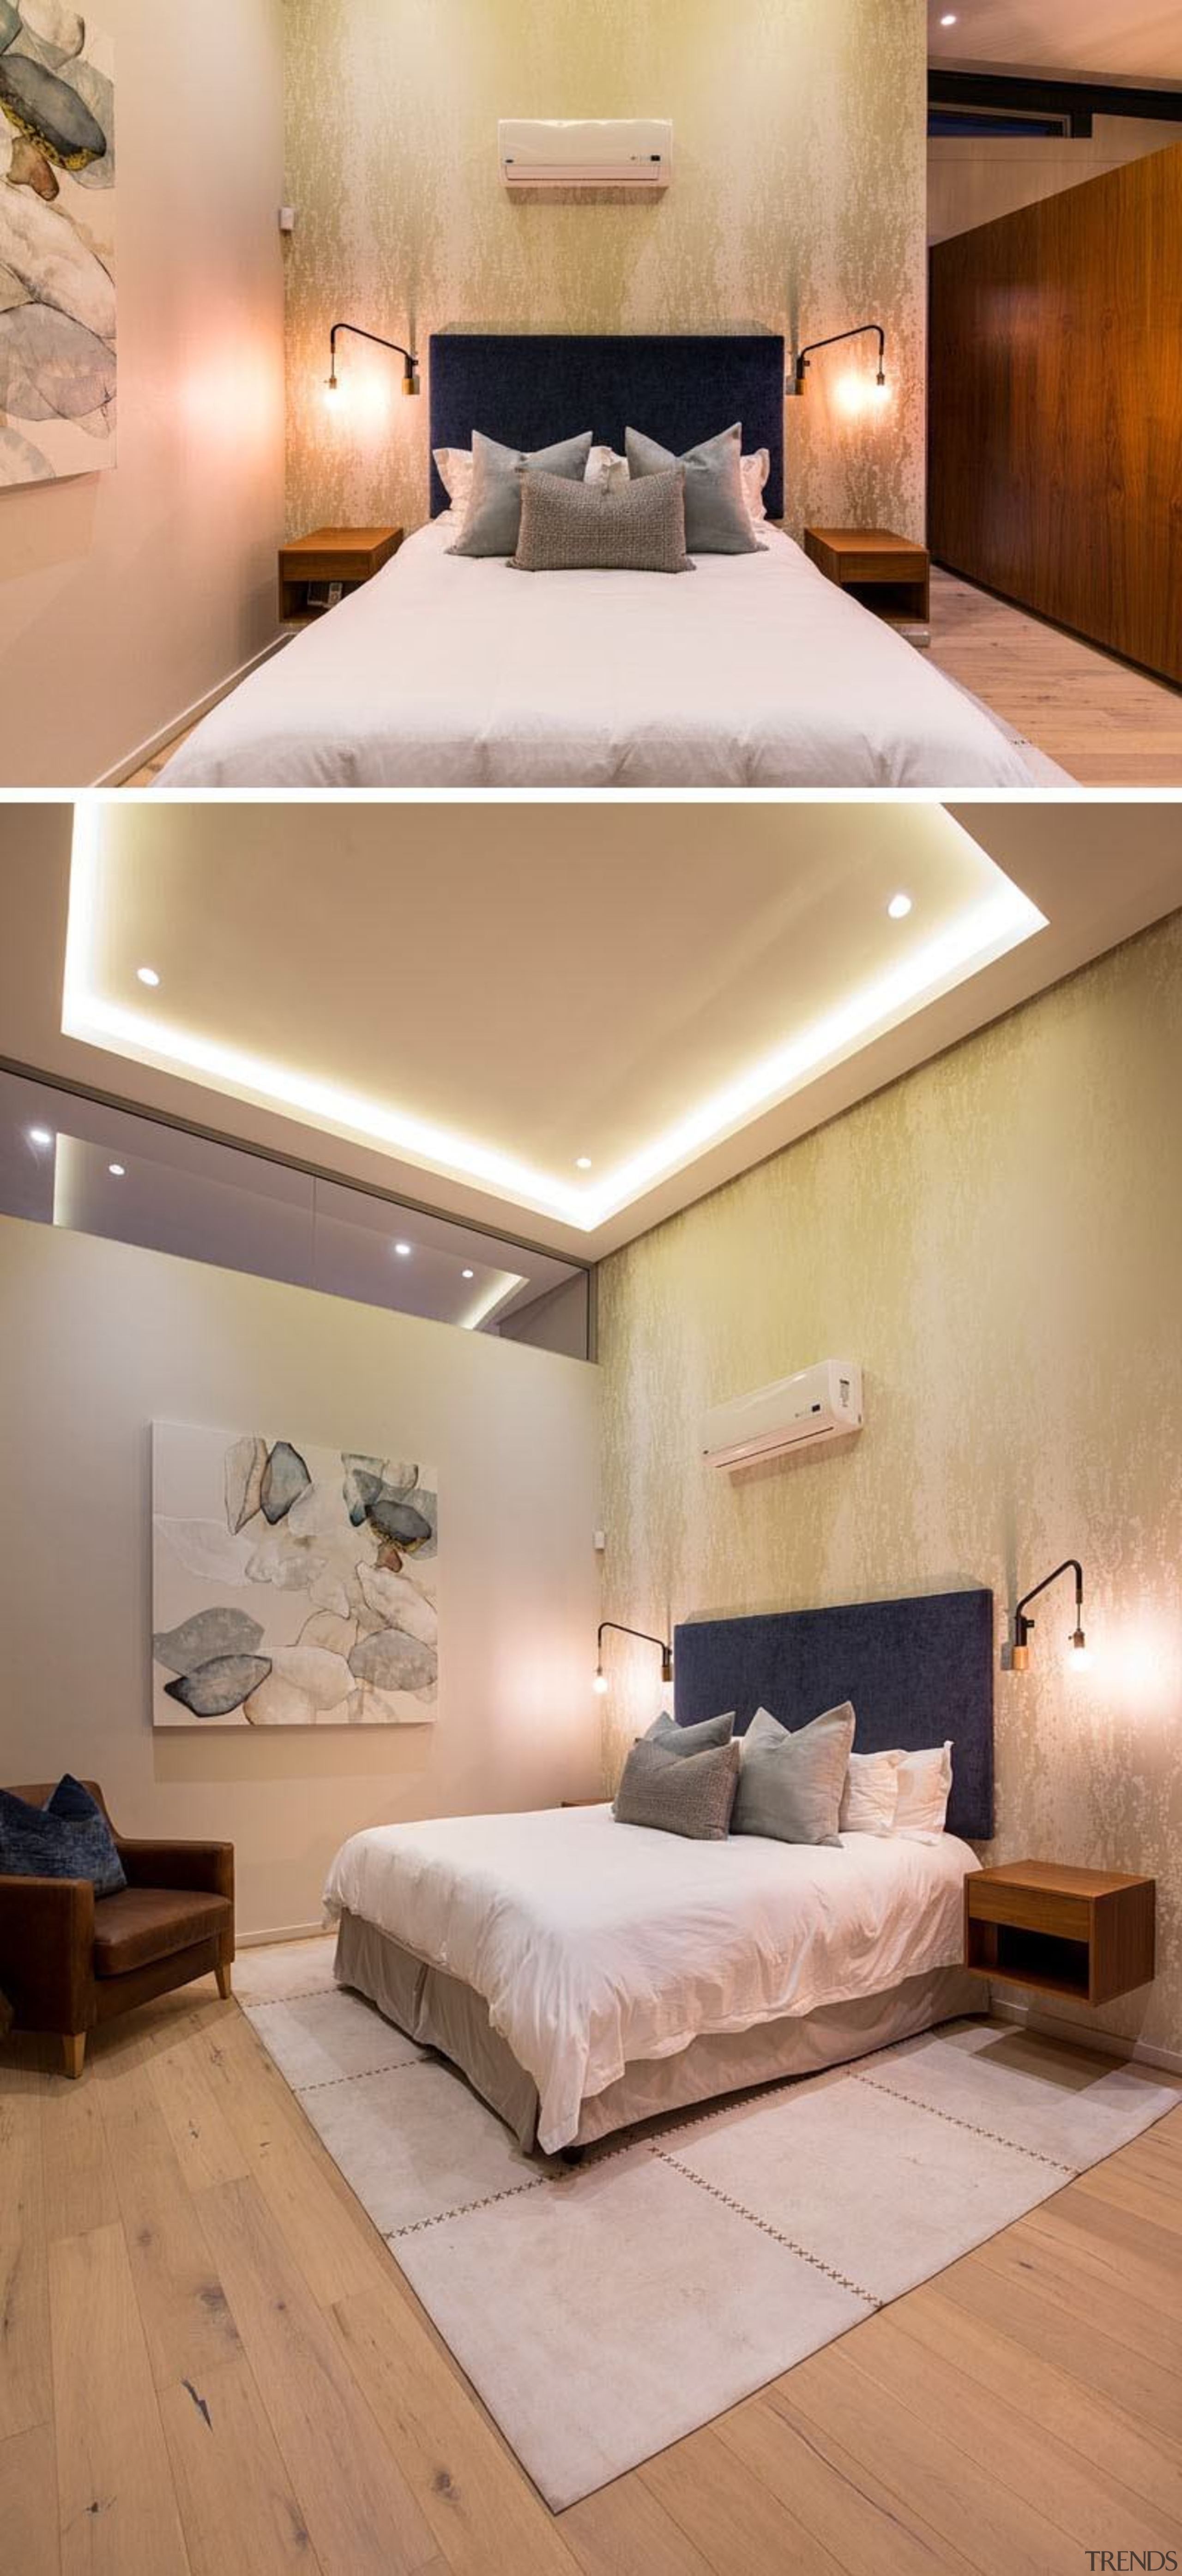 Architect: Union3Photography by Grant Pitcher bed, bed frame, bed sheet, bedroom, ceiling, daylighting, floor, flooring, furniture, home, interior design, lighting, mattress, room, suite, wall, wood, wood flooring, orange, gray